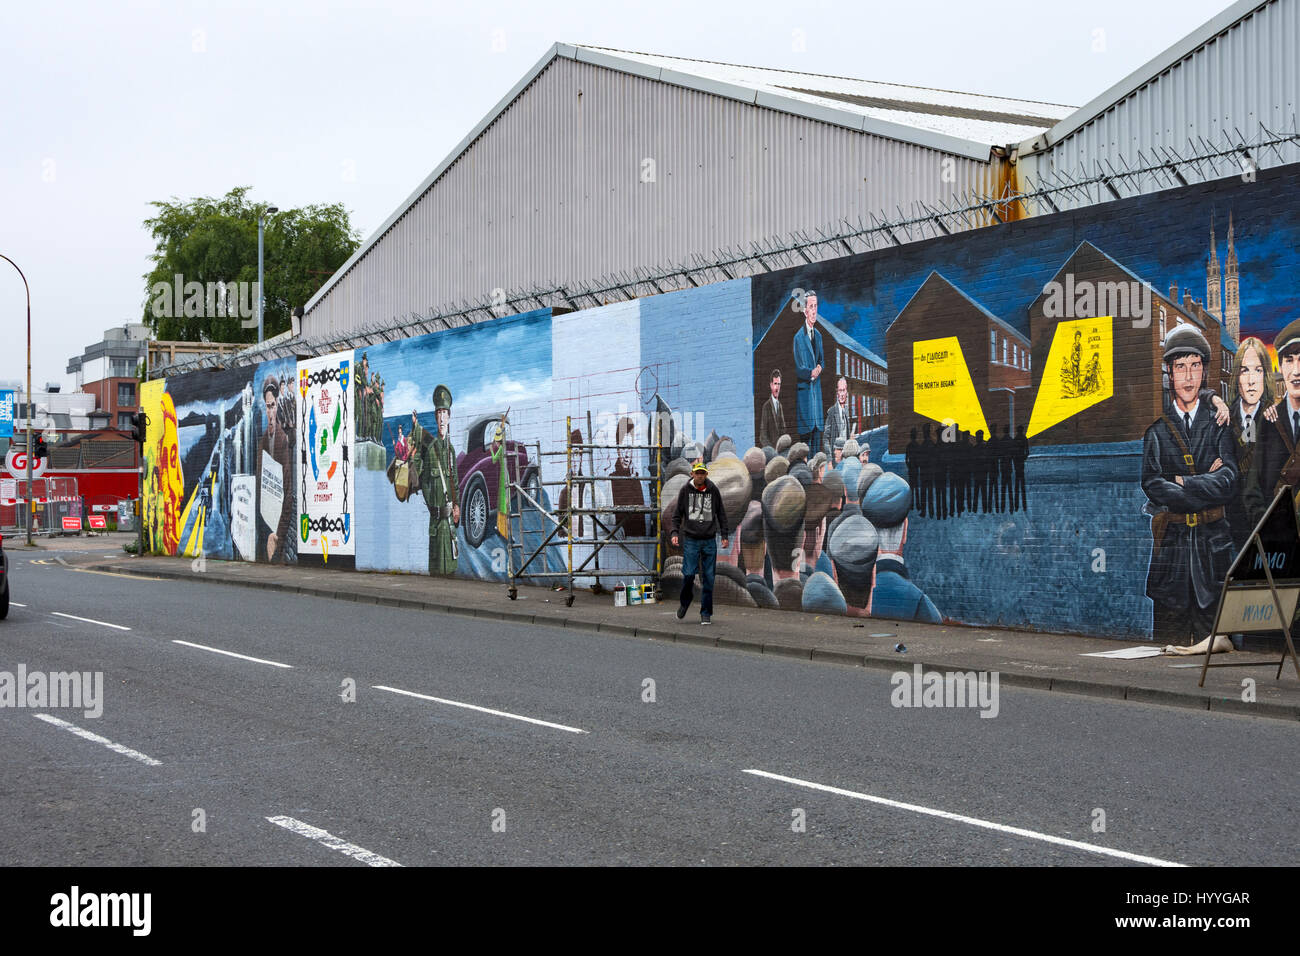 Republican wall mural on the Falls Road, Belfast, County Antrim, Northern Ireland, UK - Stock Image